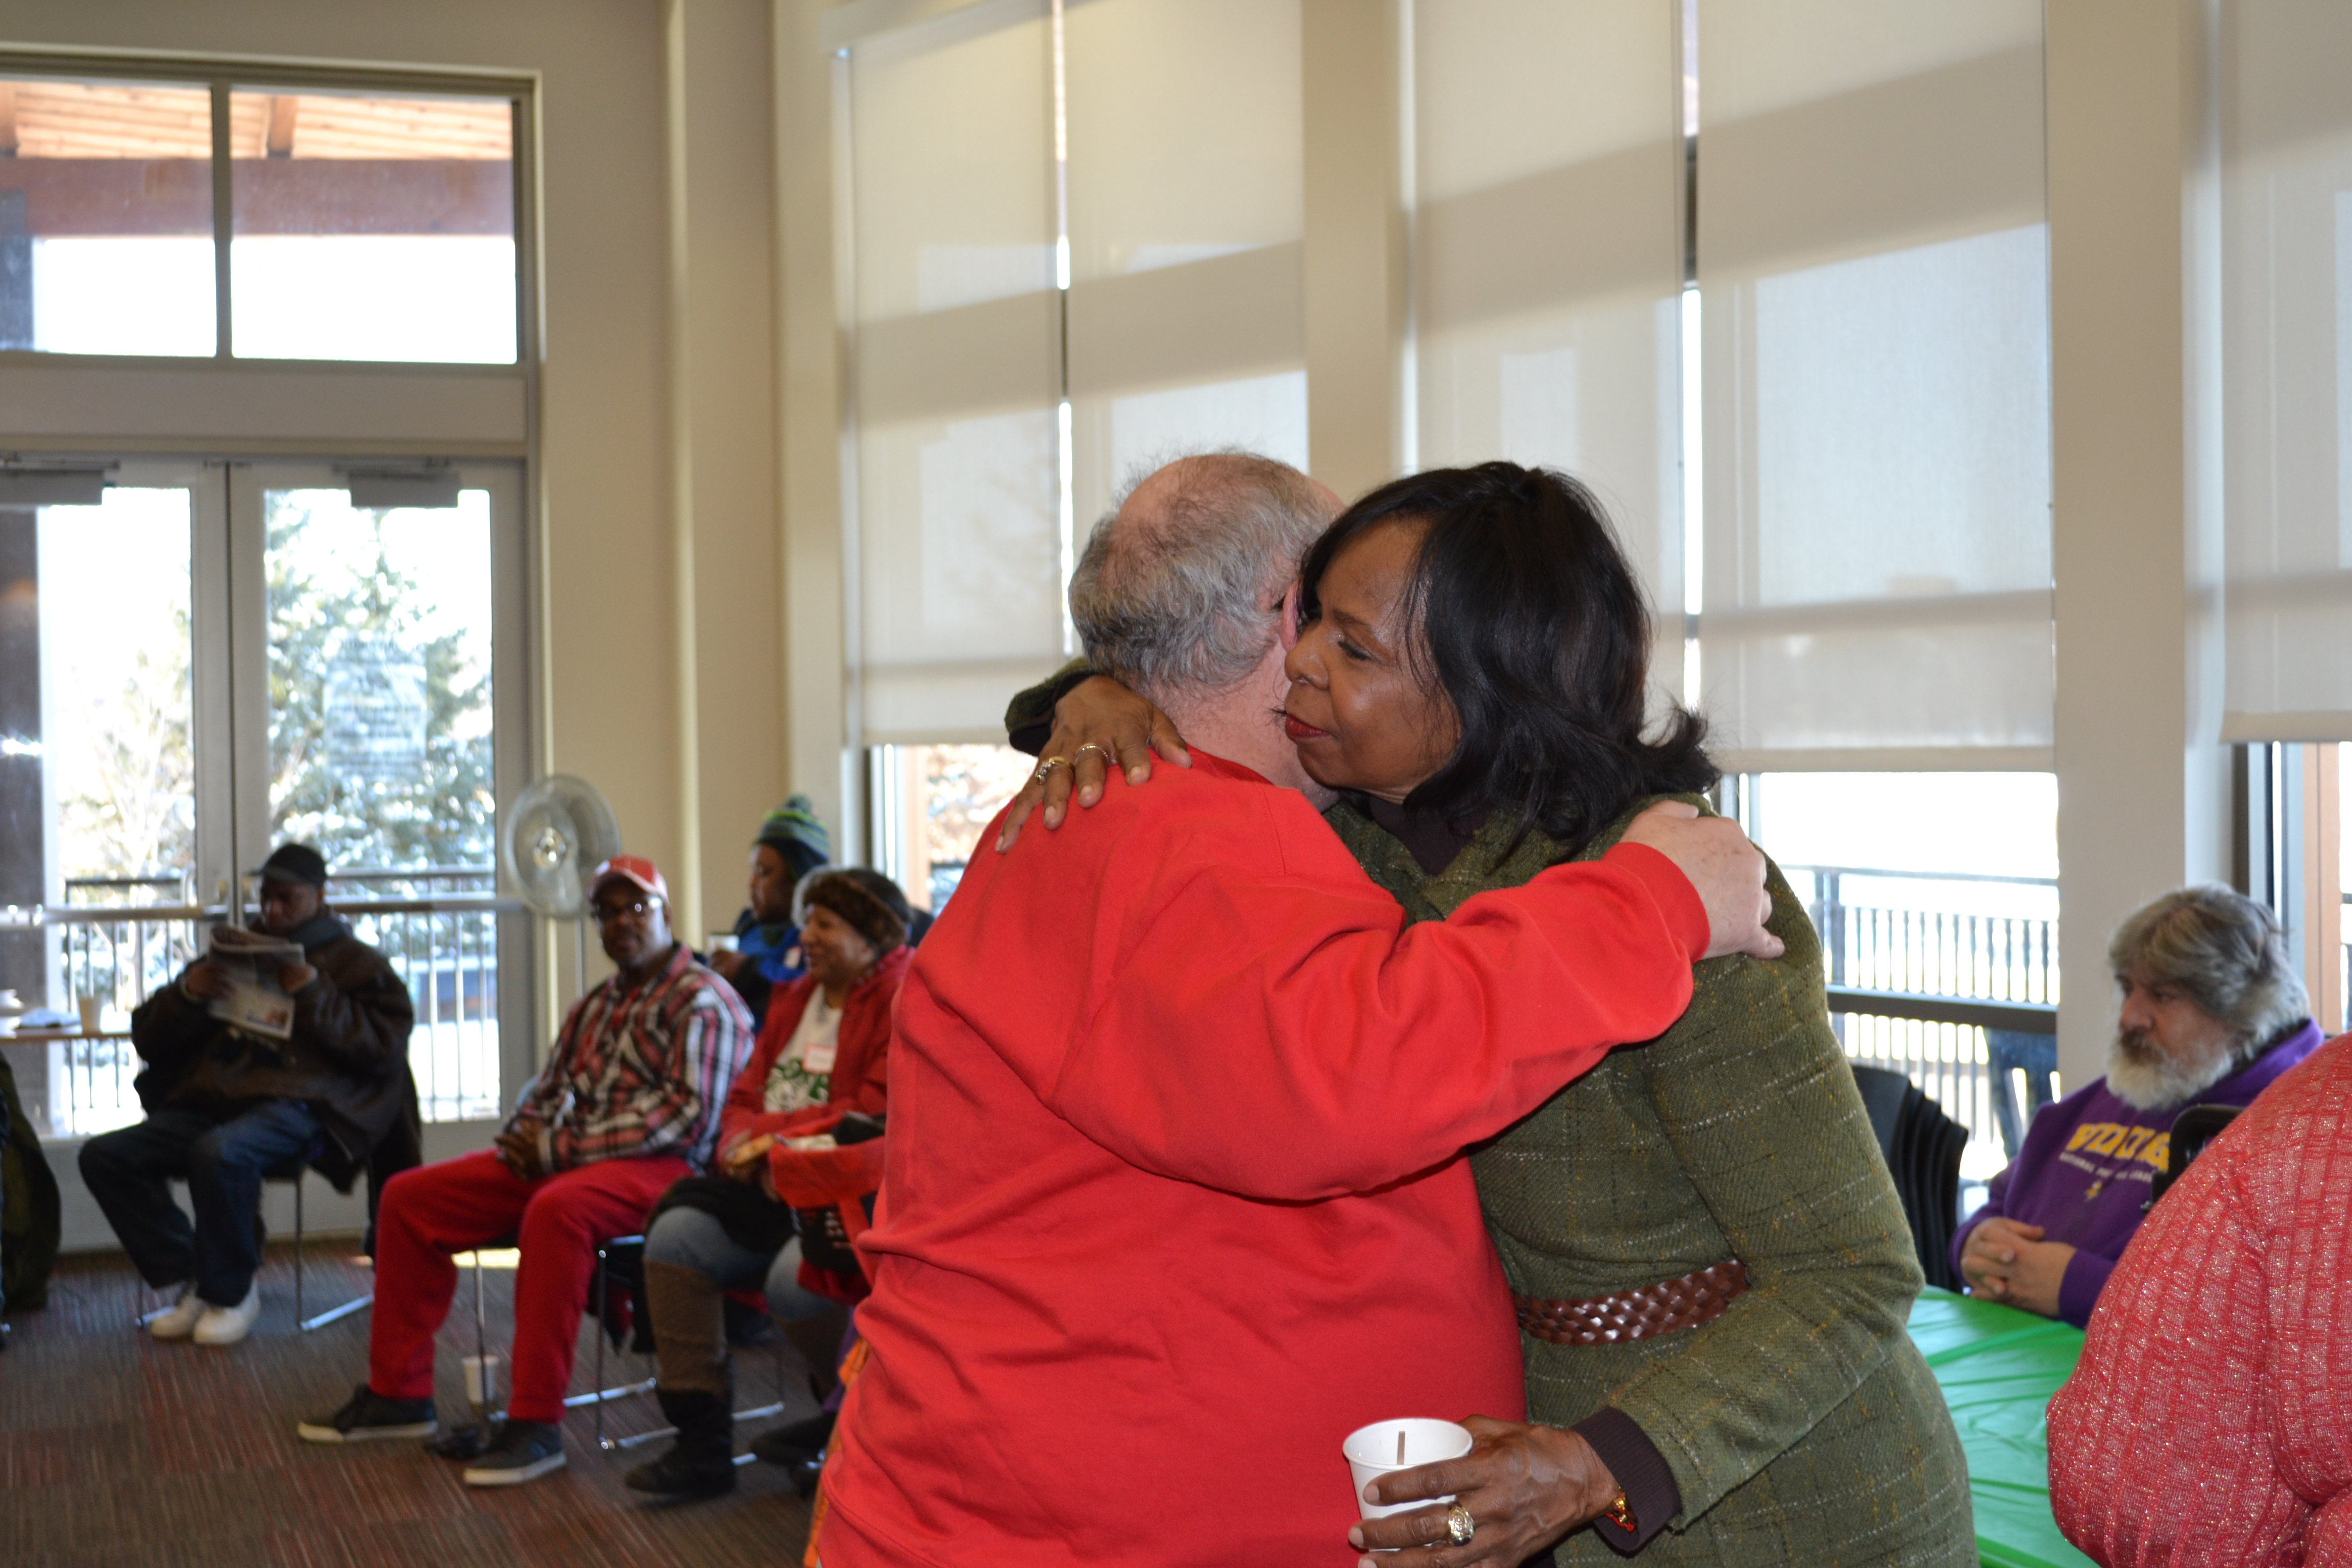 Cora McCorvey says farewell to residents